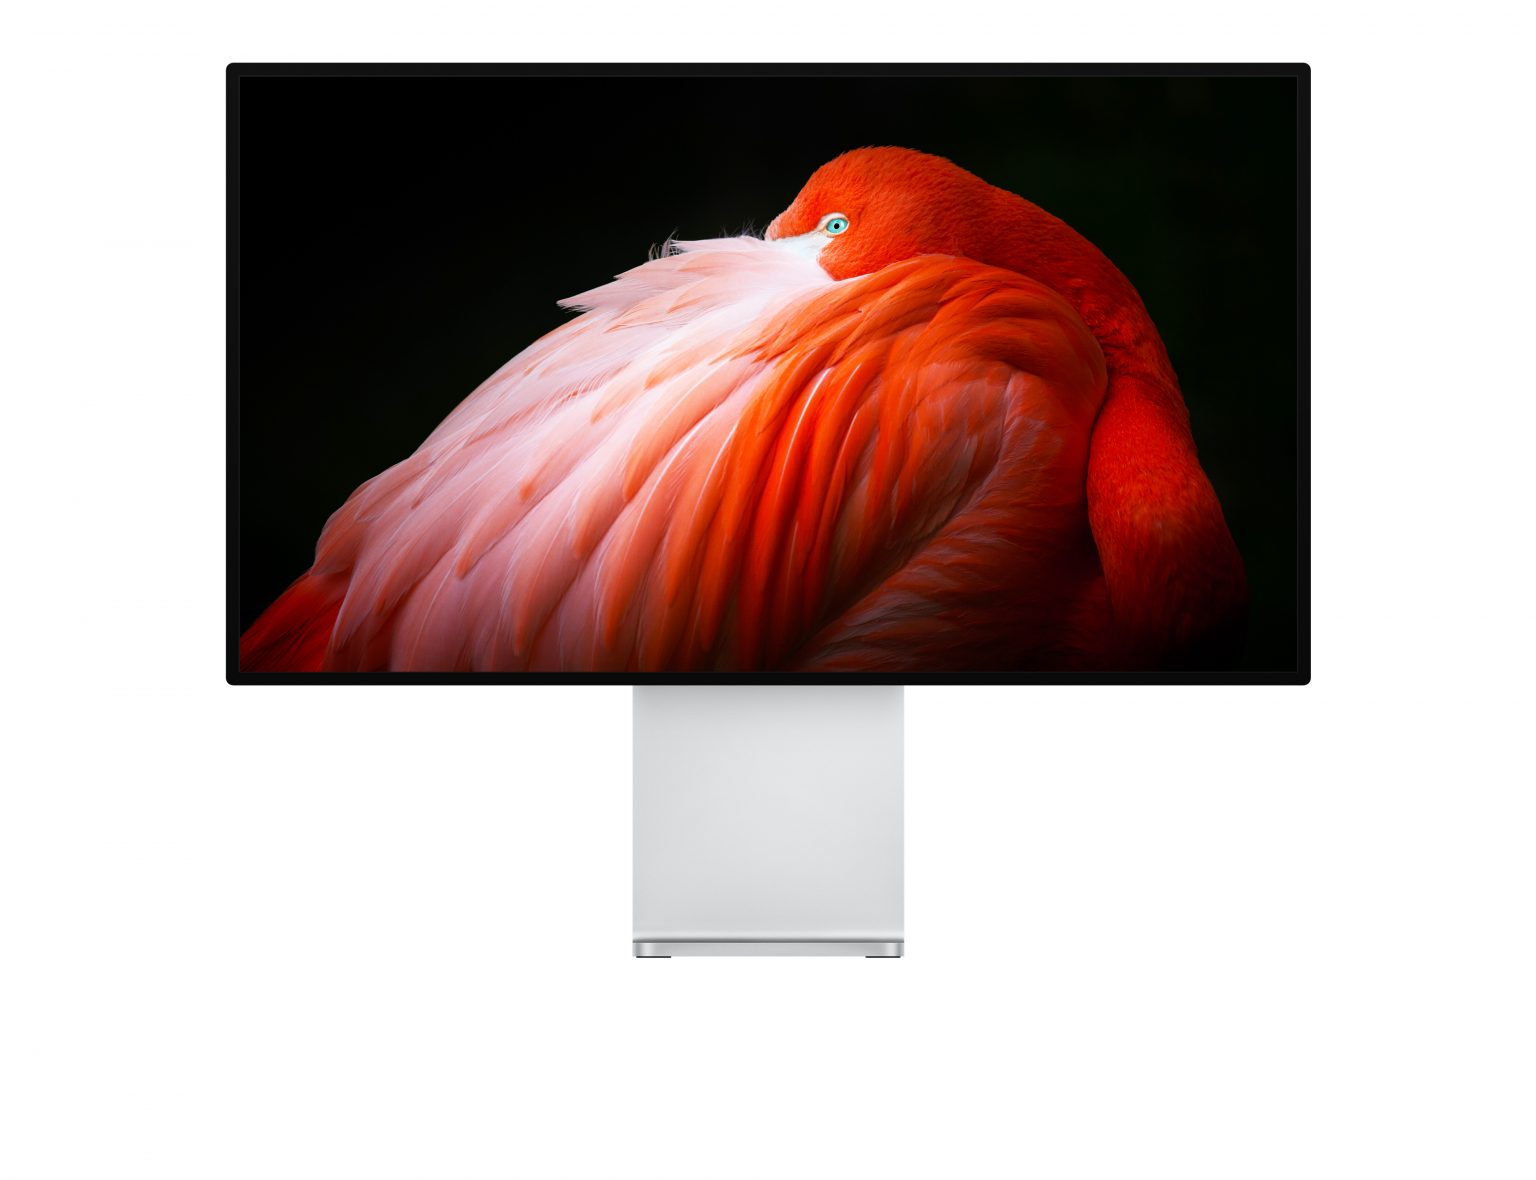 A new Apple display may replace the Pro Display XDR.